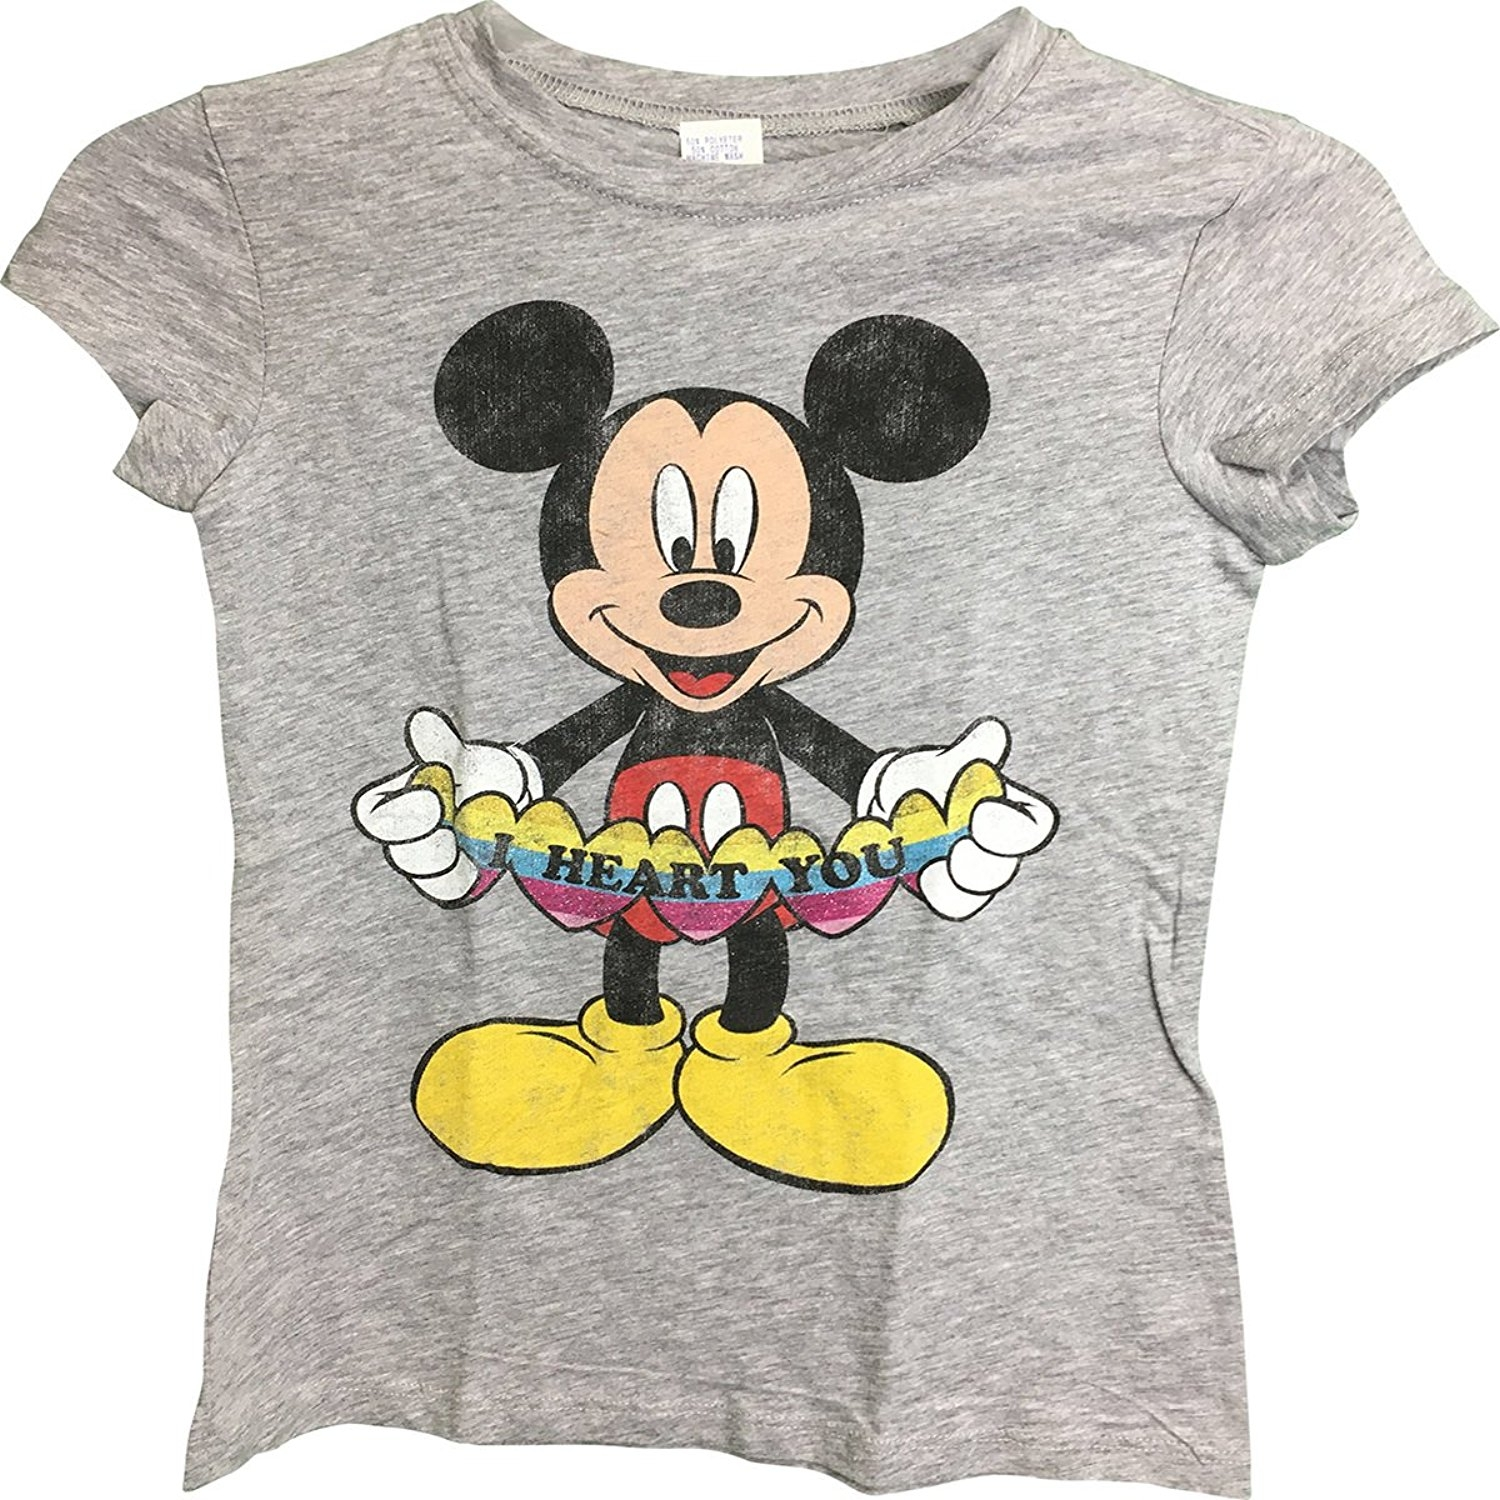 Mickey Mouse I Heart You T-Shirt Grey6/8